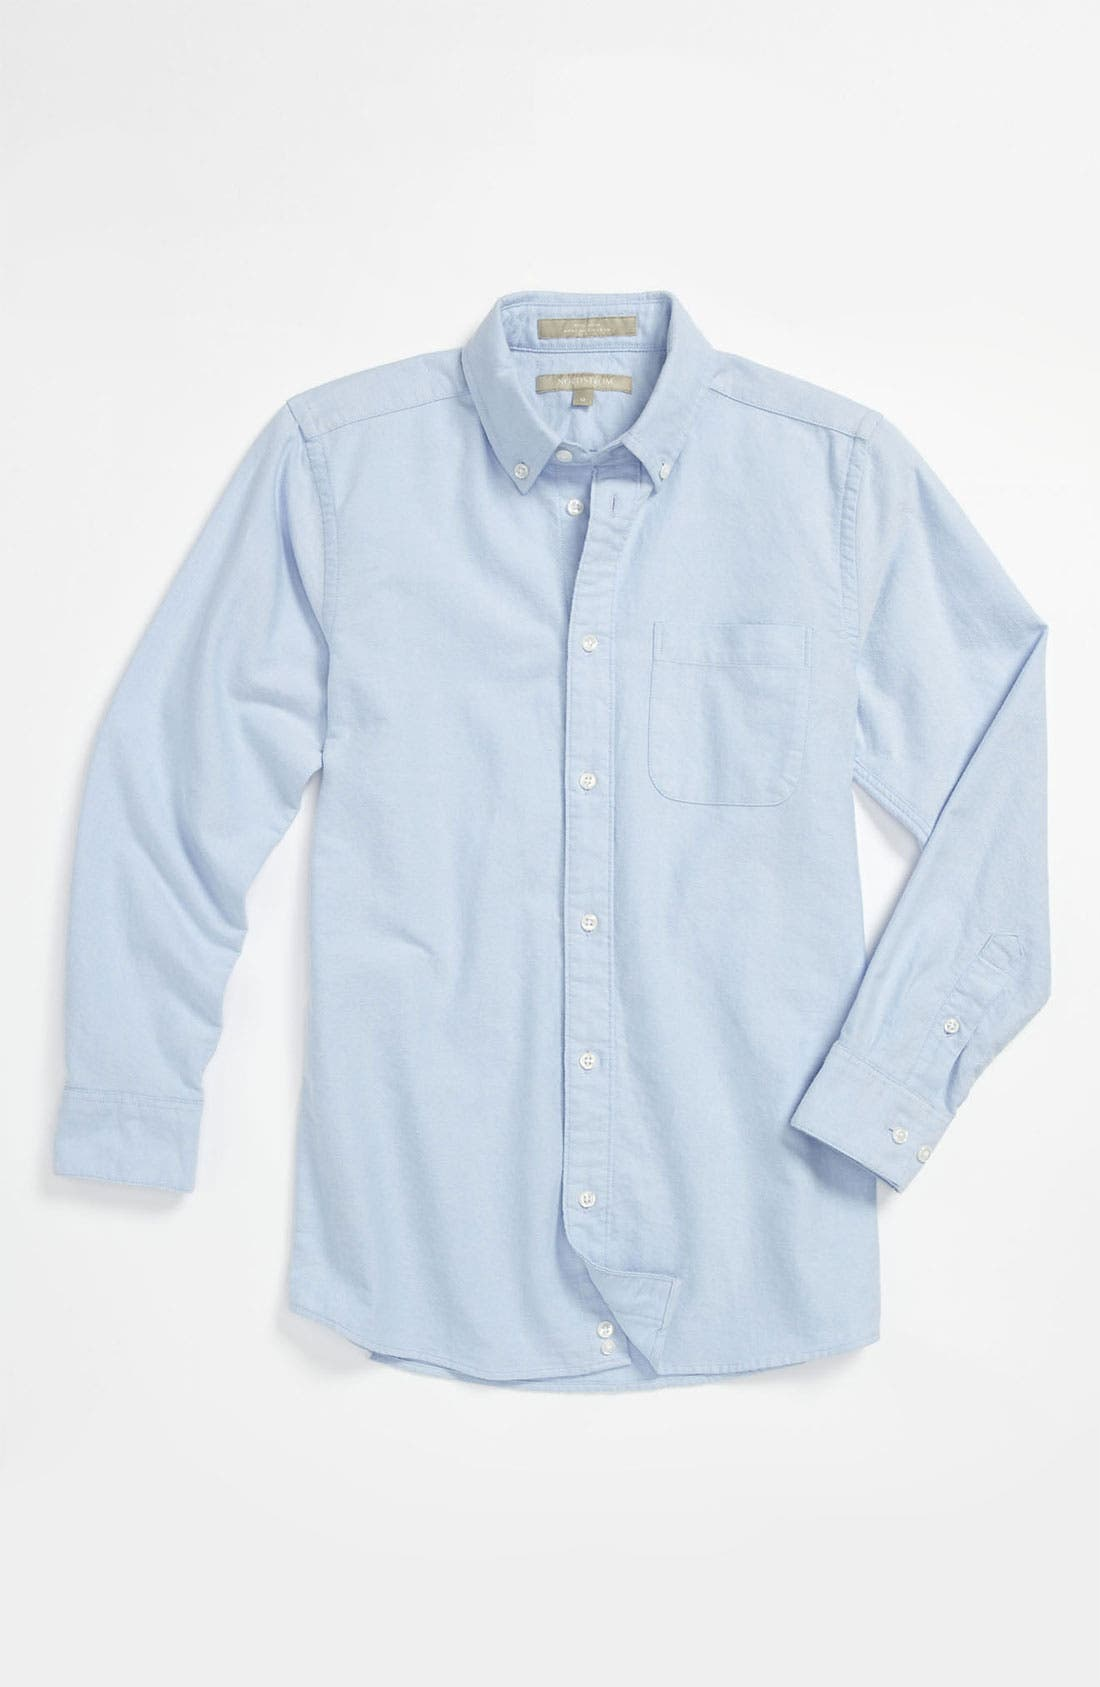 Alternate Image 1 Selected - Nordstrom 'Michael' Woven Oxford Shirt (Big Boys)